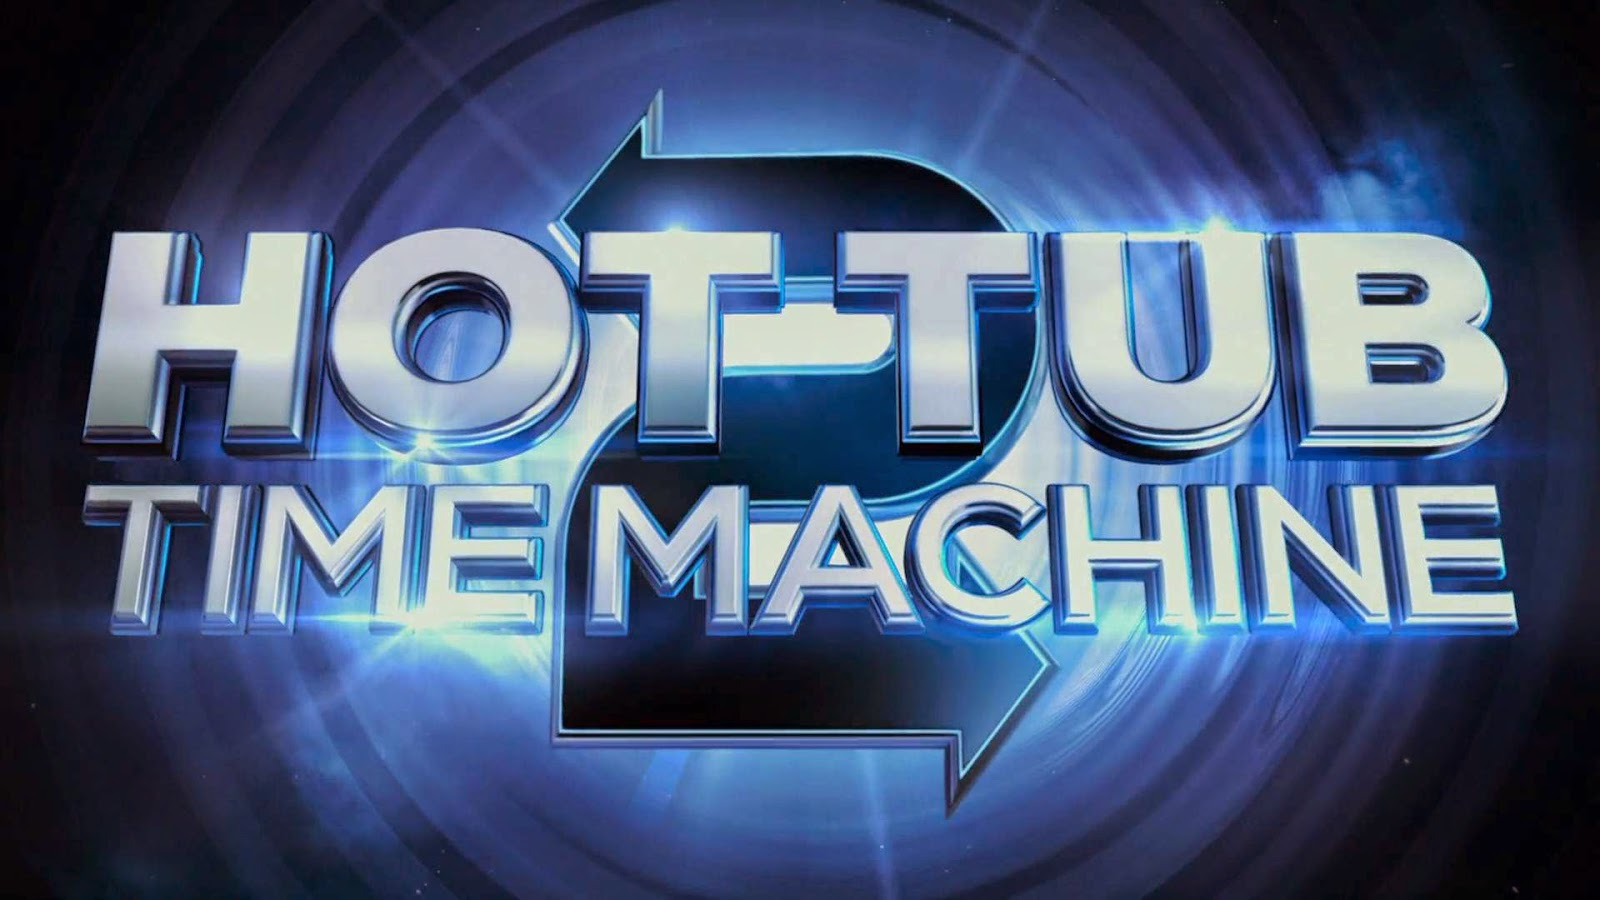 Hot Tub Time Machine 2 (2015) S2 s Hot Tub Time Machine 2 (2015)